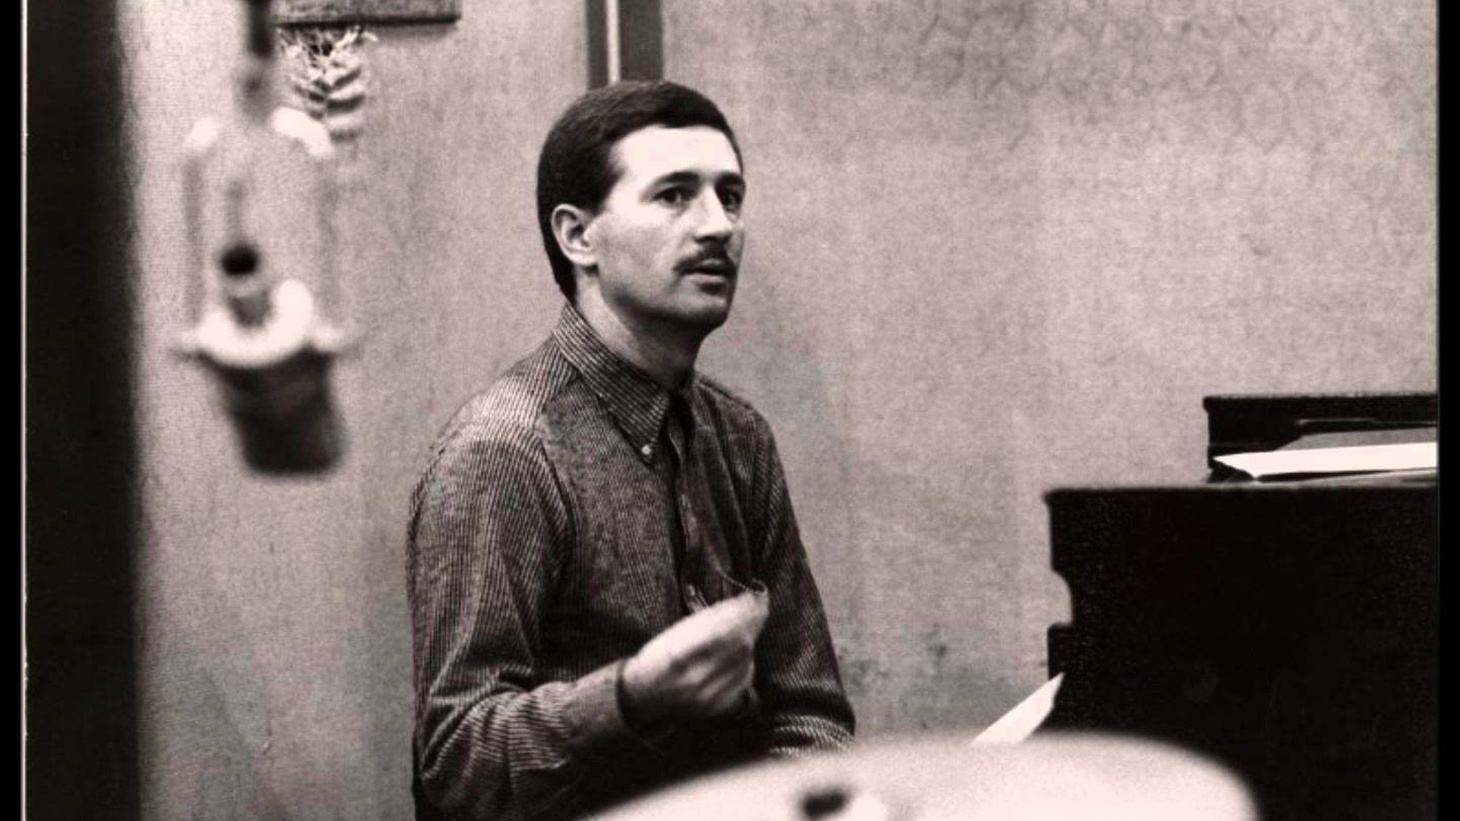 This week Rhythm Planet remembers the Mark Twain of jazz, Mose Allison, and the superb composer/arranger Claus Ogerman.